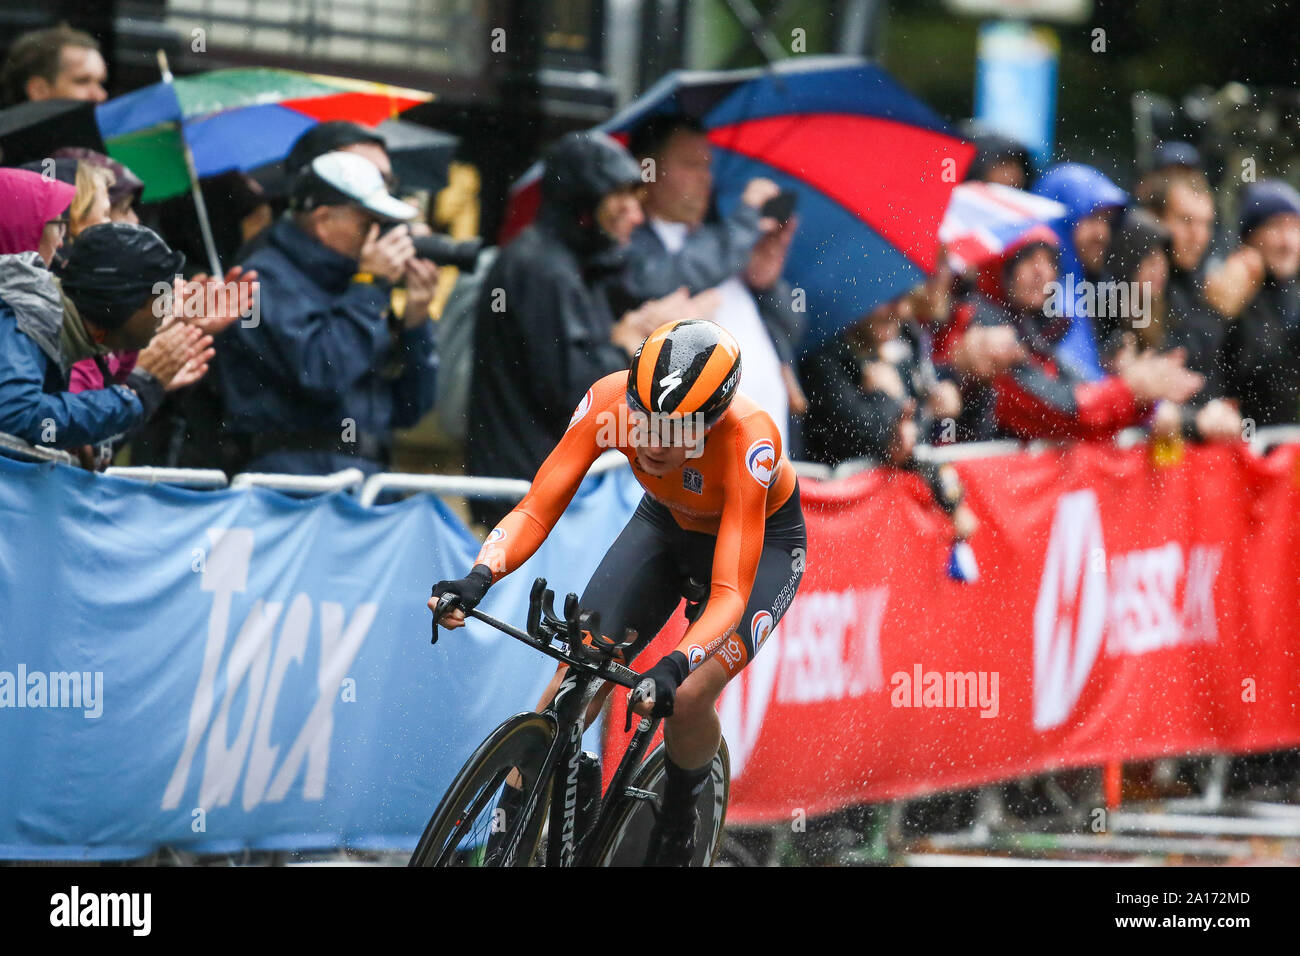 Harrogate, UK. 24th September 2019. Anna Ven der Breggen of the Netherlands crosses the line to take Silver in the 2019 UCI Road World Championships Womens Elite Individual Time Trial. September 24, 2019 Credit Dan-Cooke/Alamy Live News Stock Photo